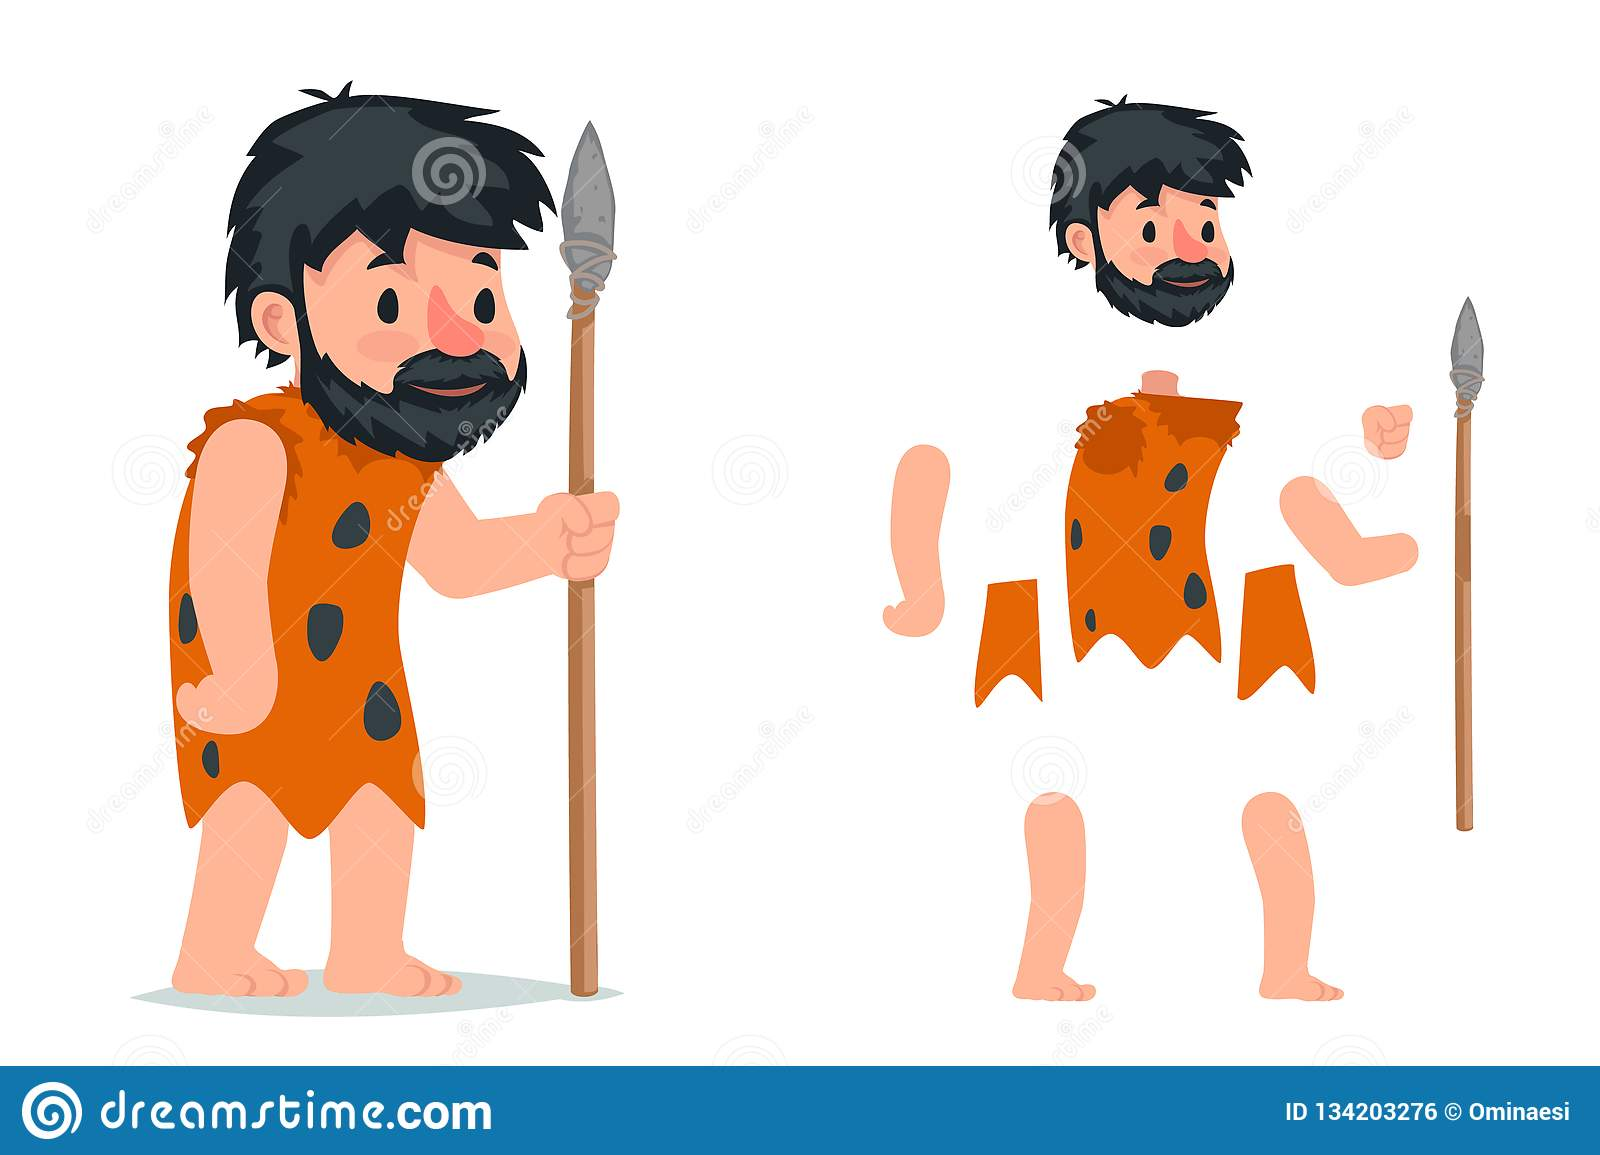 Ancient Caveman With Stone Spear Action RPG Game Character Layered